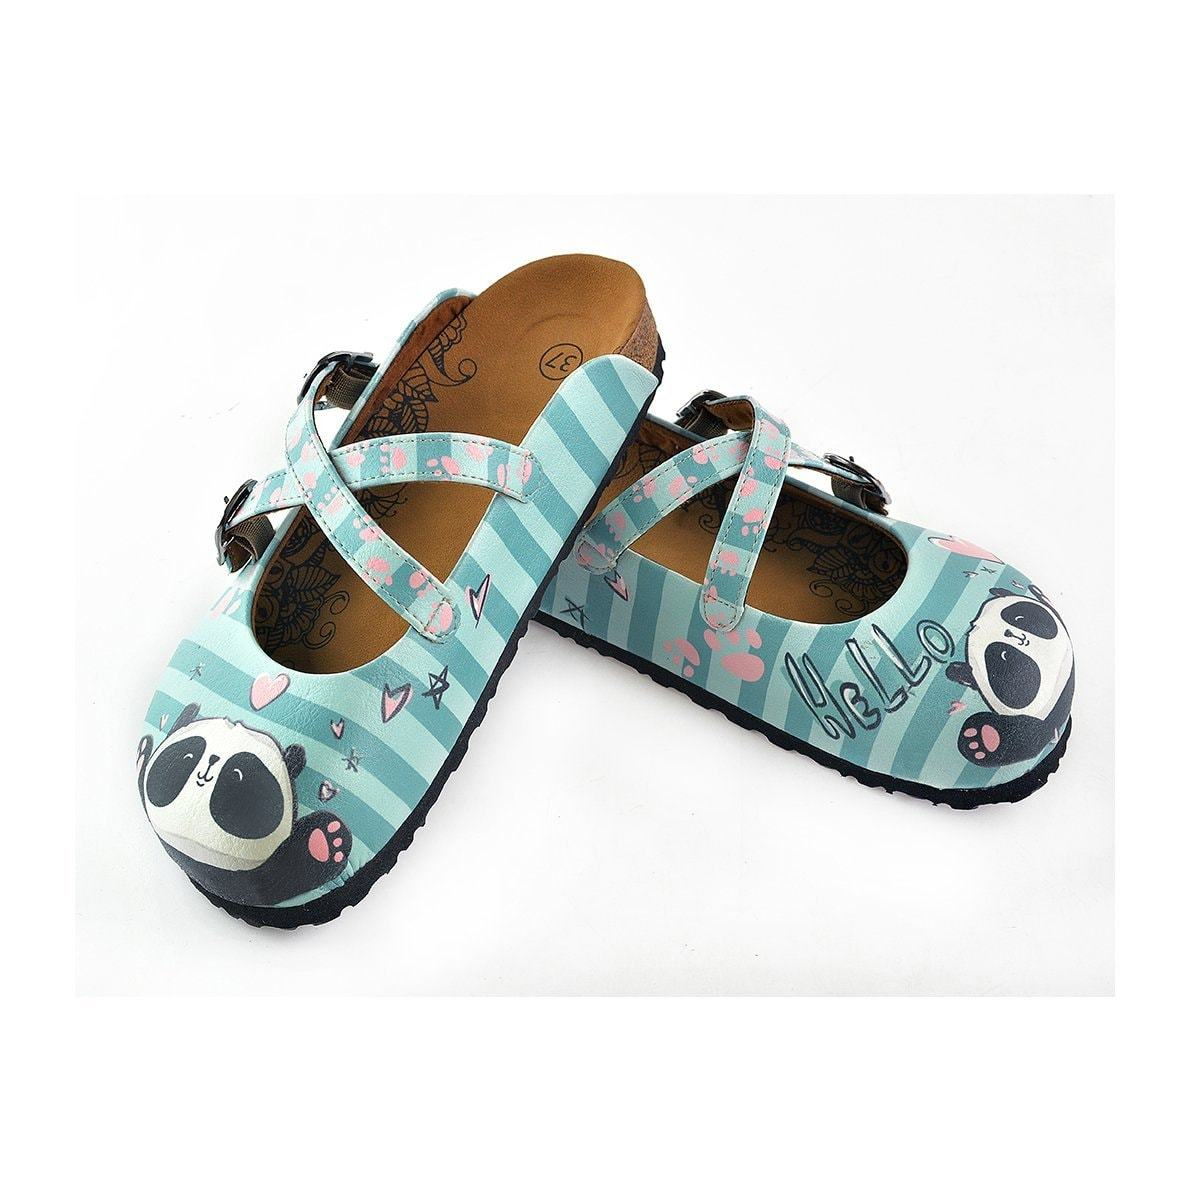 Blue and Light Blue Colored Strip, Pin Heart Pattern, Sweet Panda Patterned Clogs - WCAL122